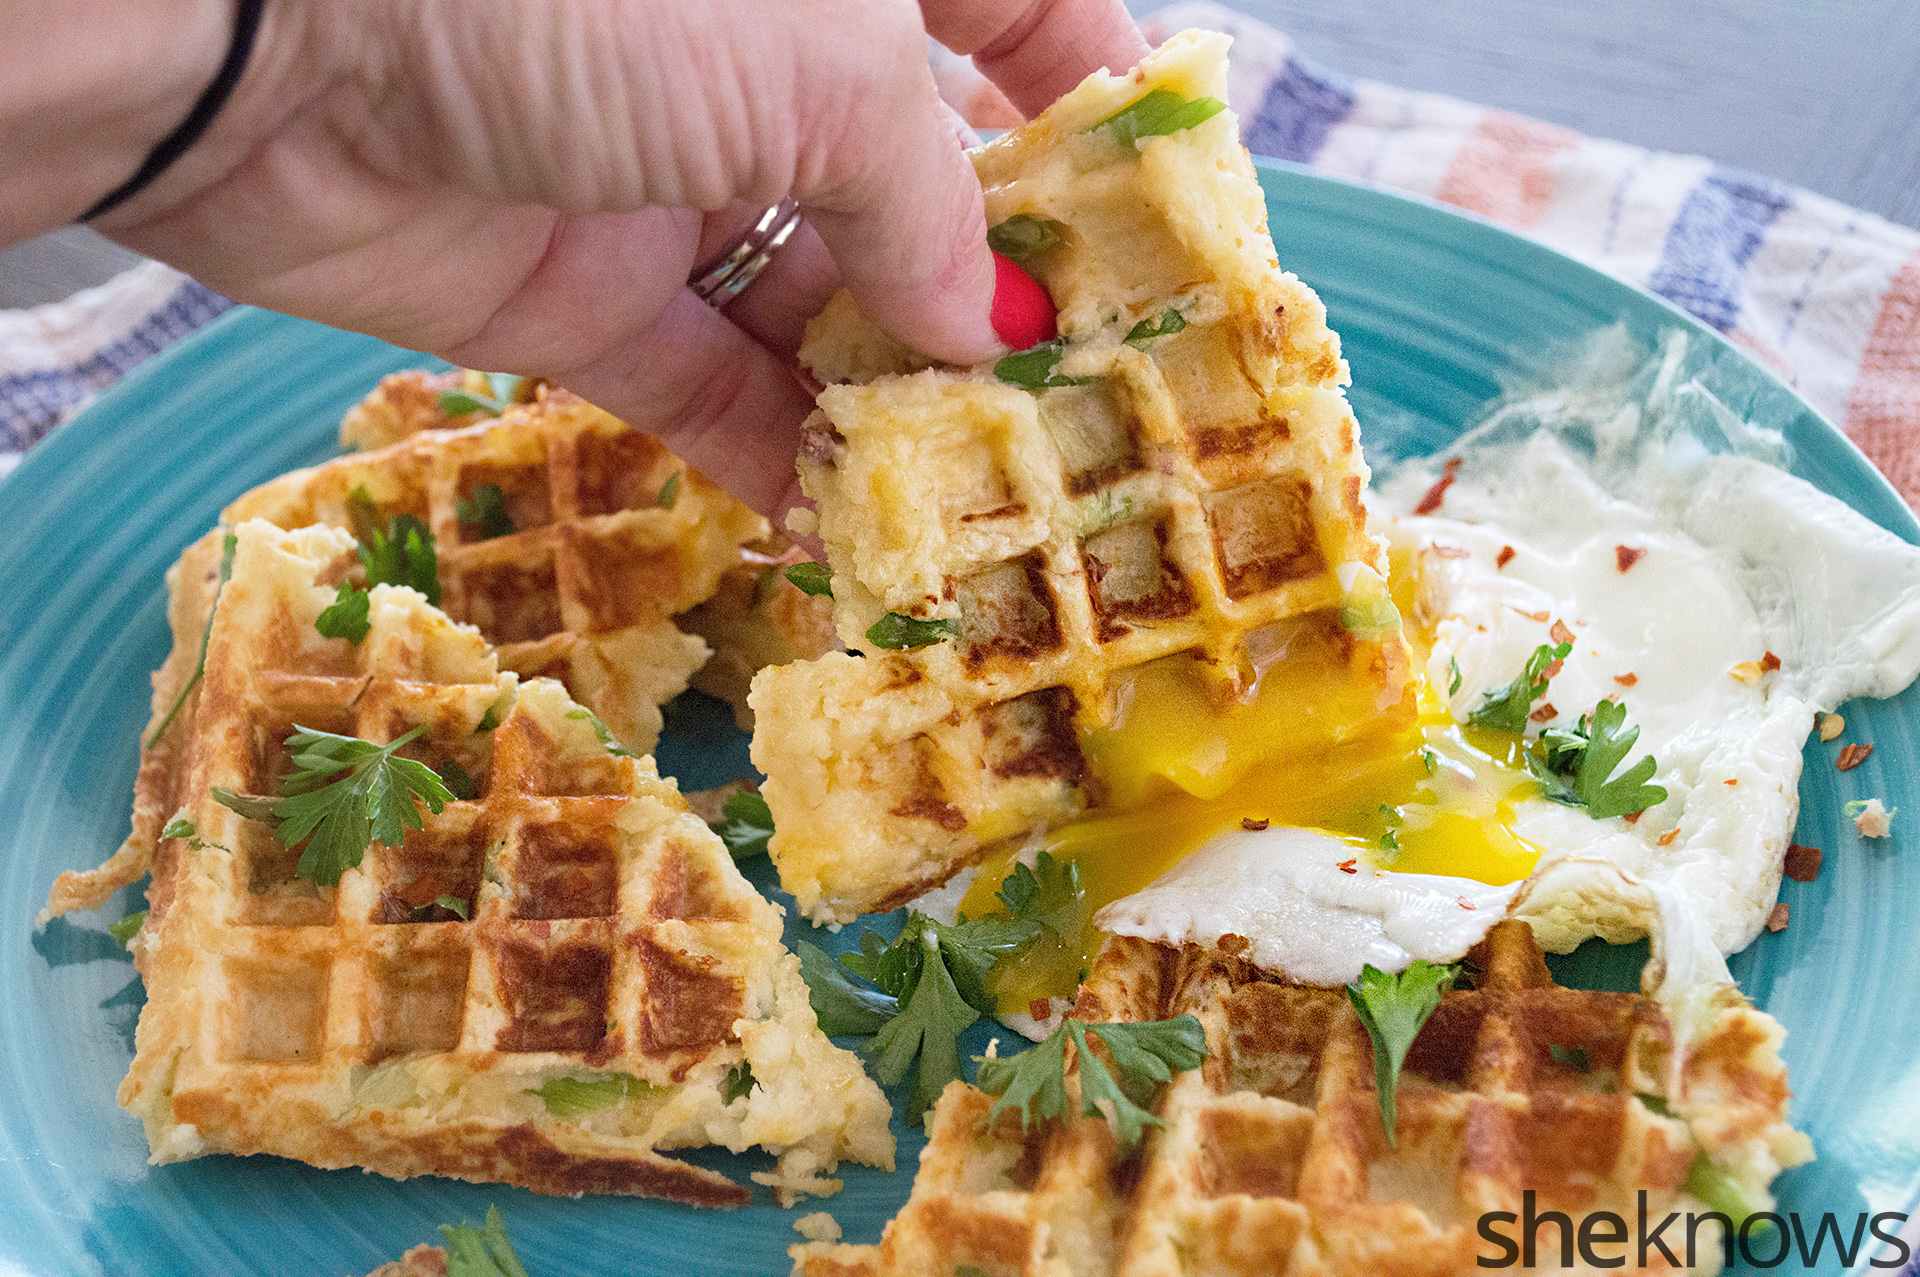 mashed potato cheddar waffles